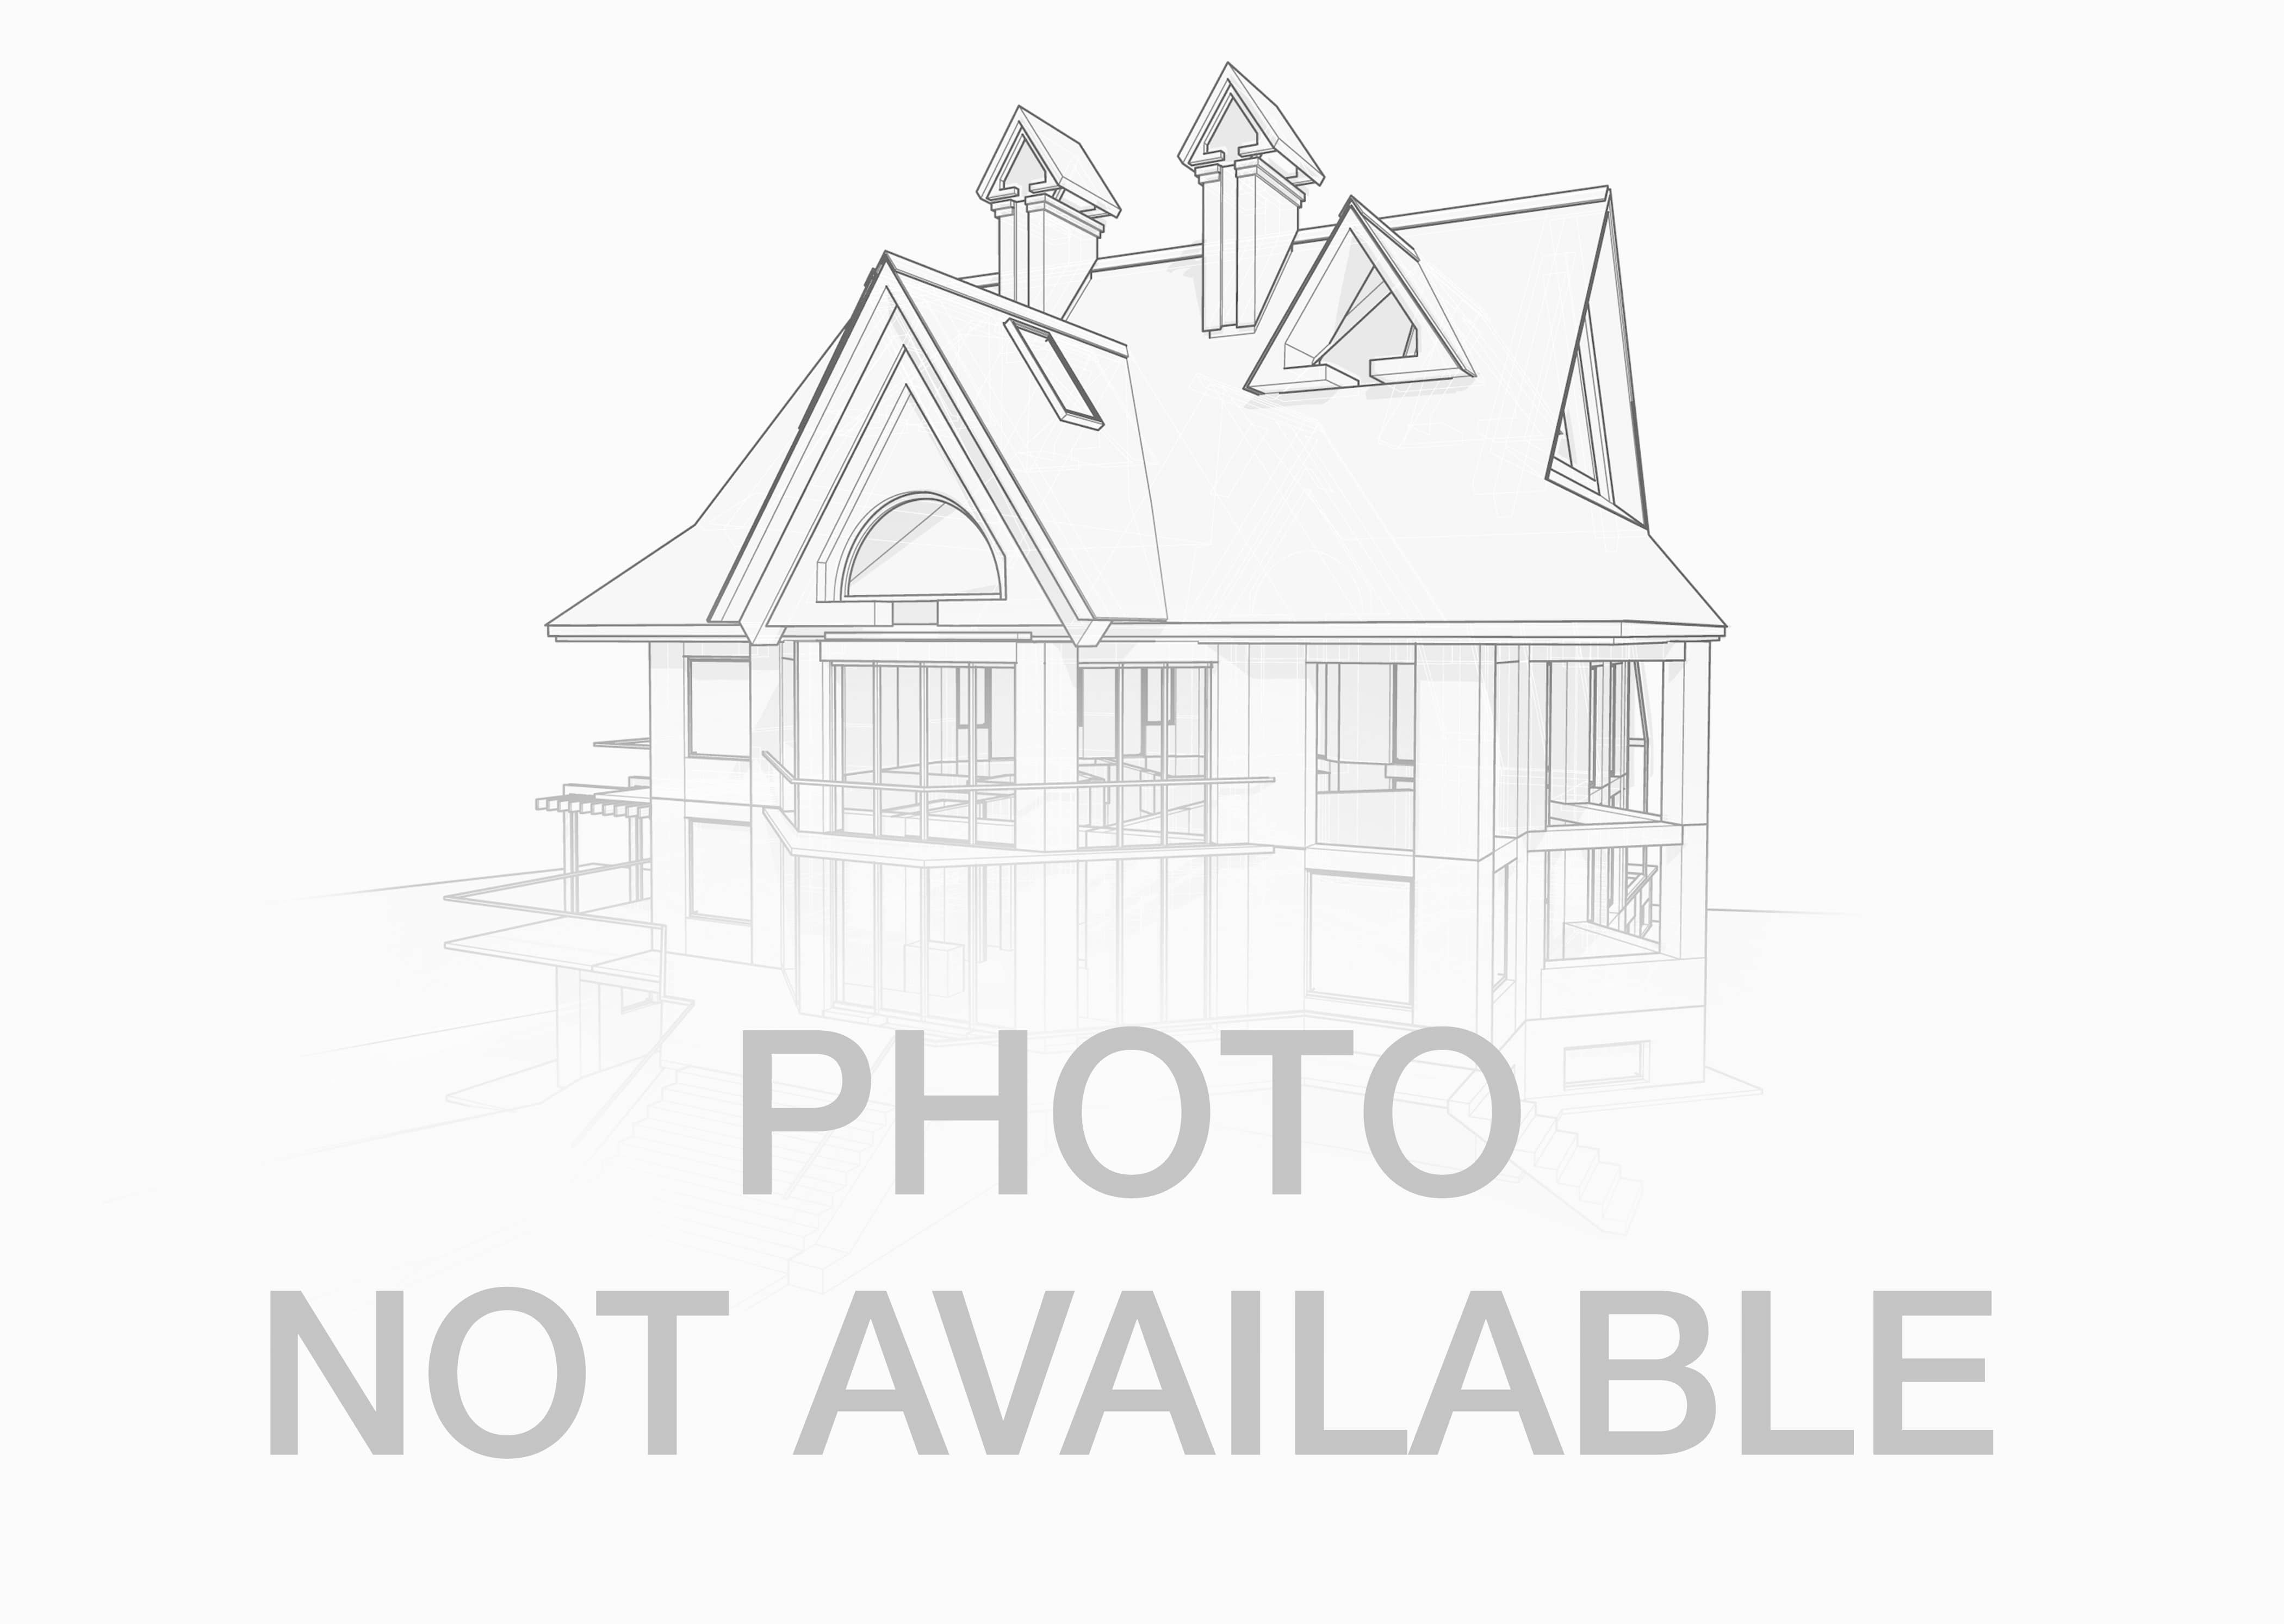 Maxton Nc Map.Maxton Nc Homes For Sale And Real Estate